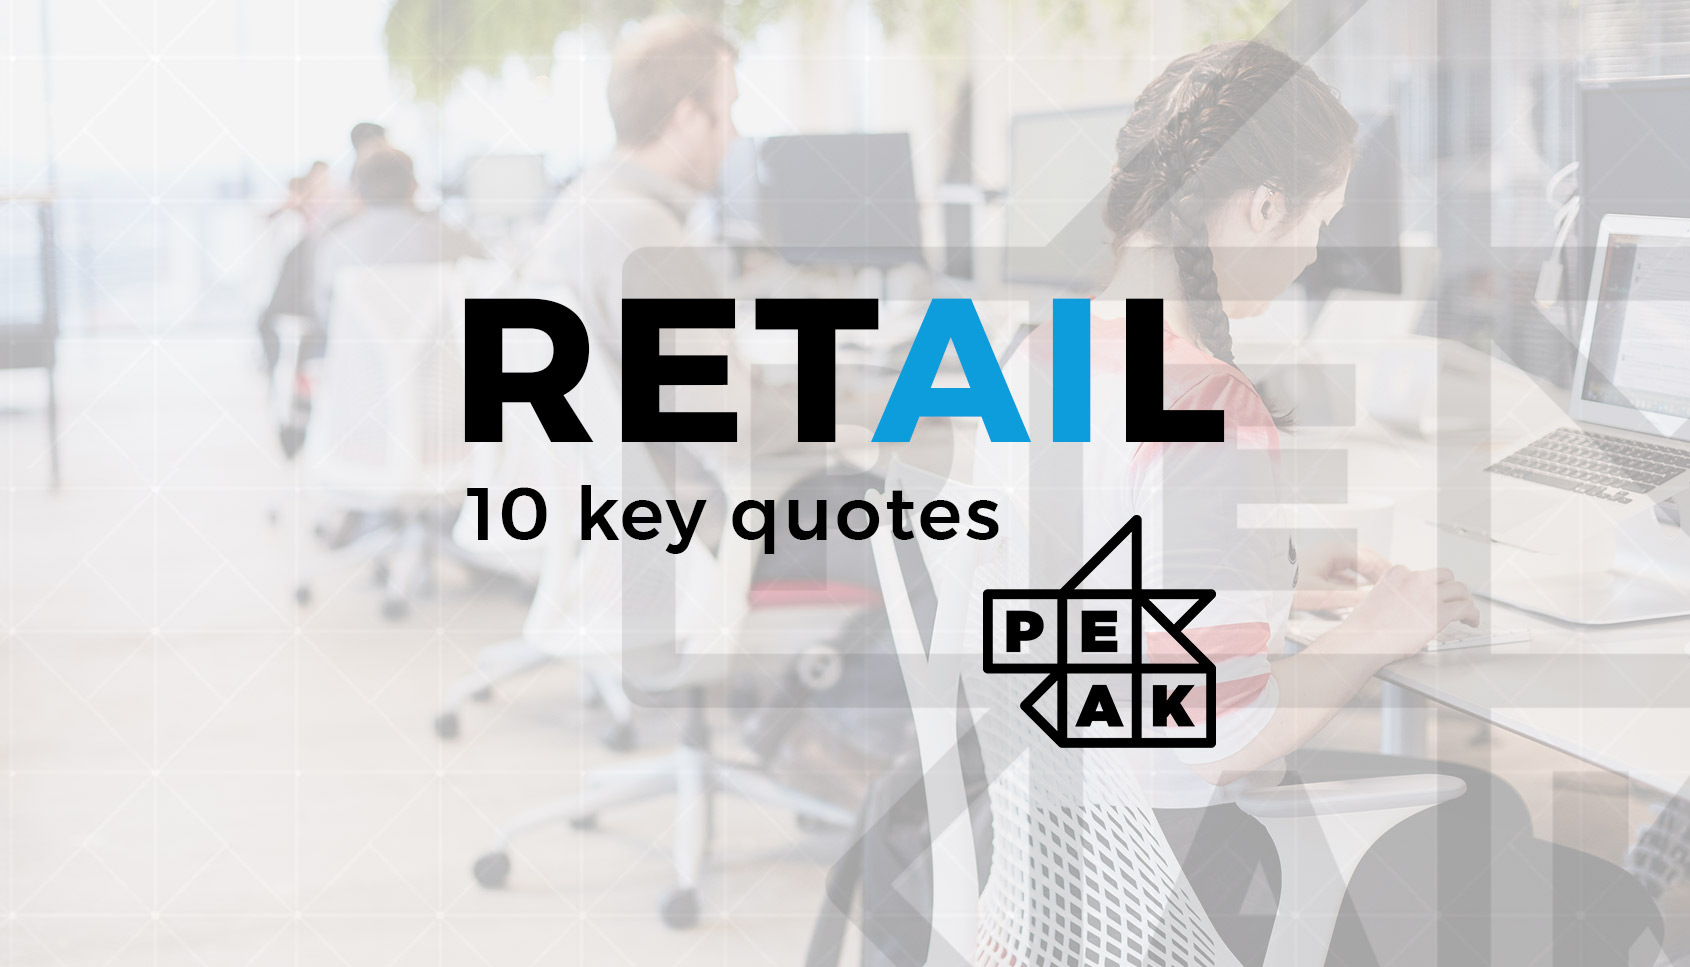 10 quotes about AI and retail (by people who know a thing or two about AI and retail)